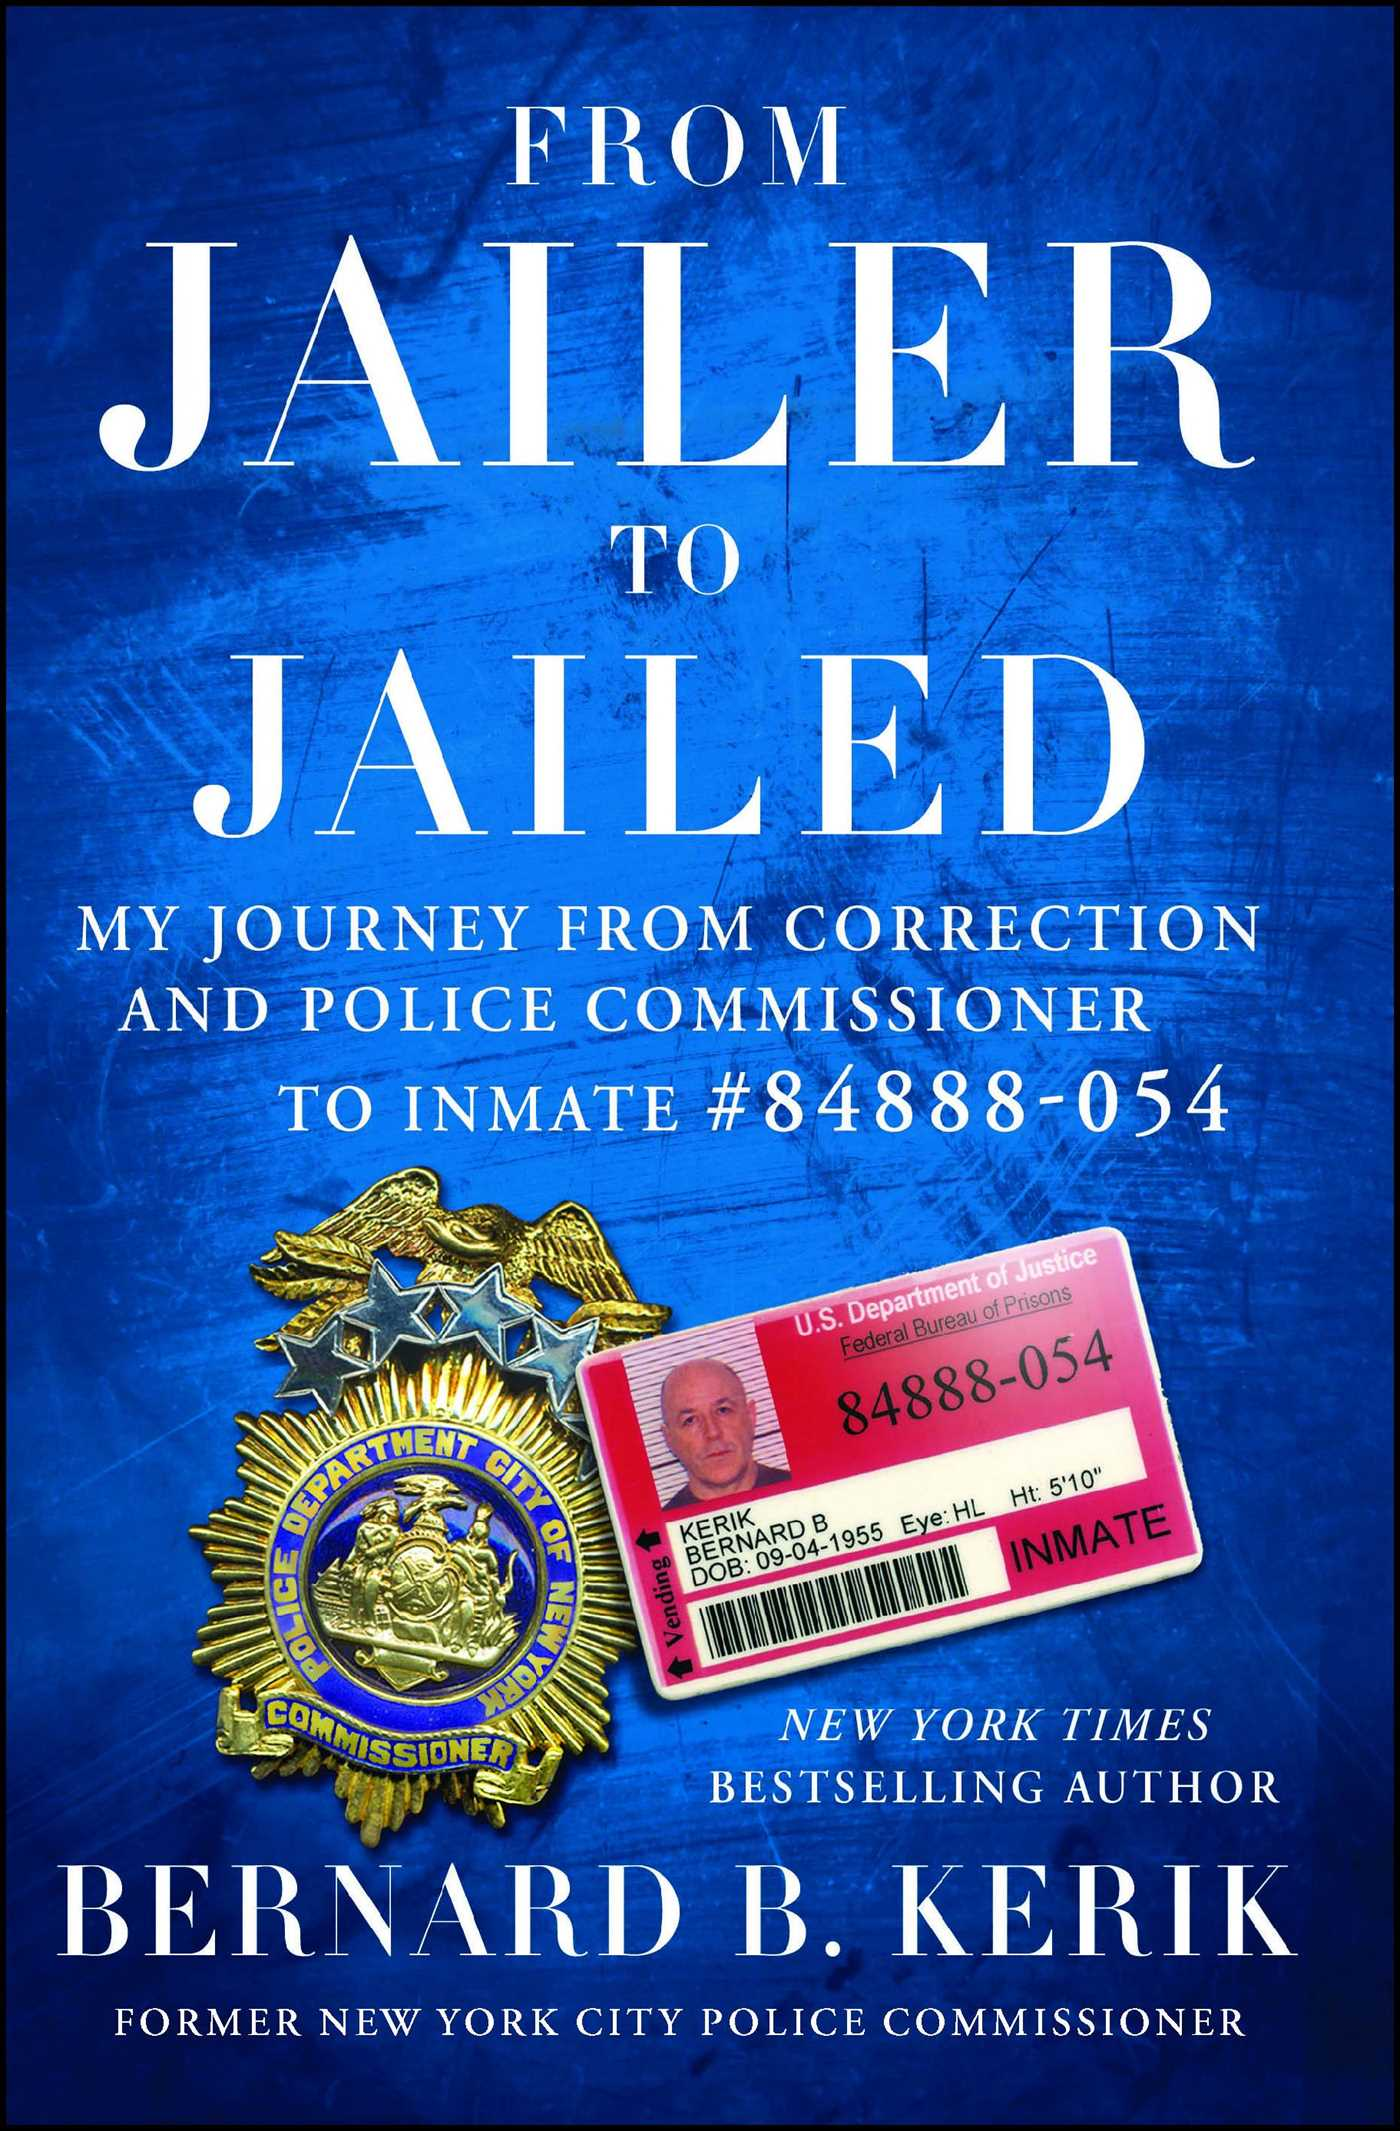 From jailer to jailed 9781476783727 hr